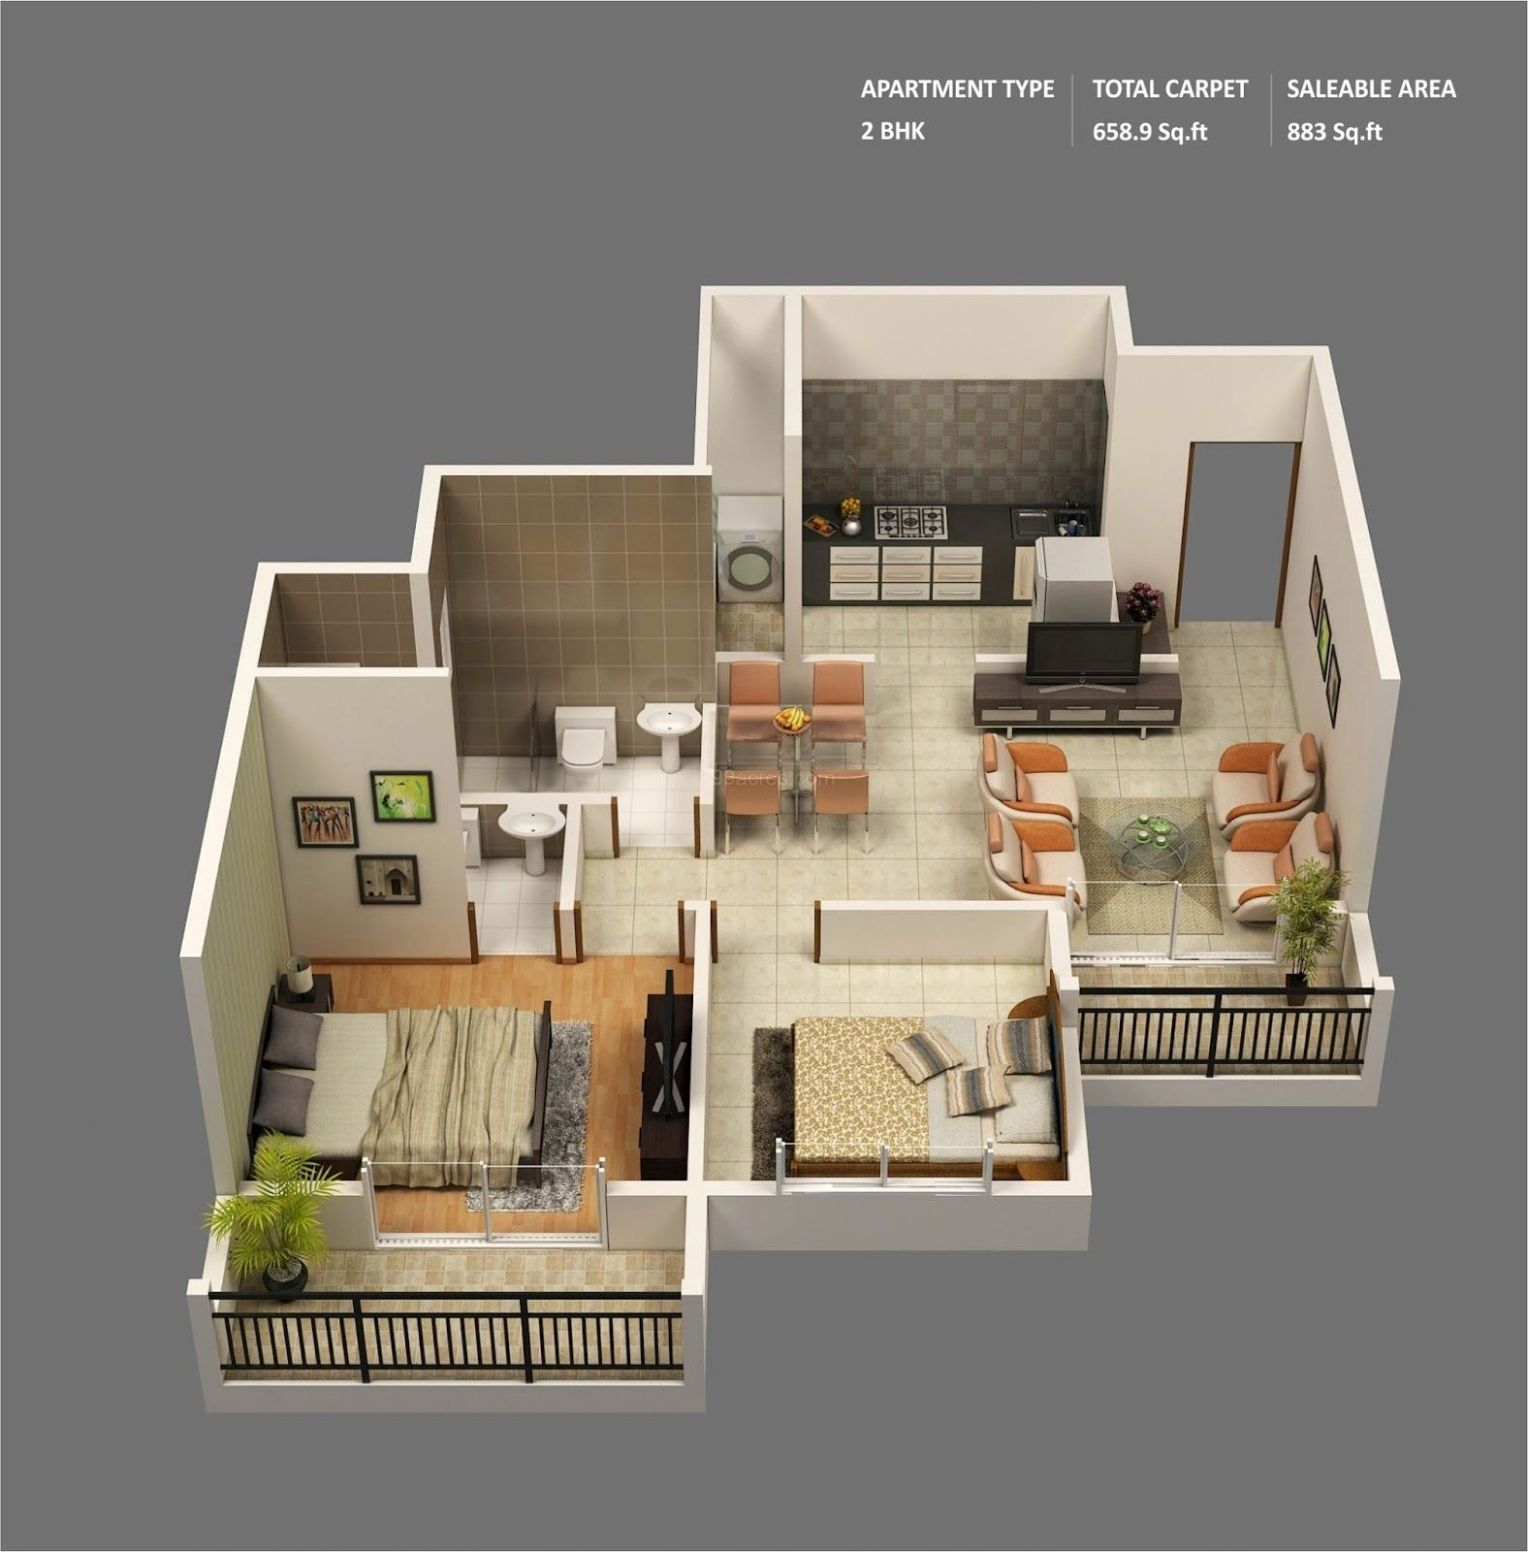 11 11D FLOOR PLANS, LAY-OUT DESIGNS FOR 11 BEDROOM HOUSE OR ...